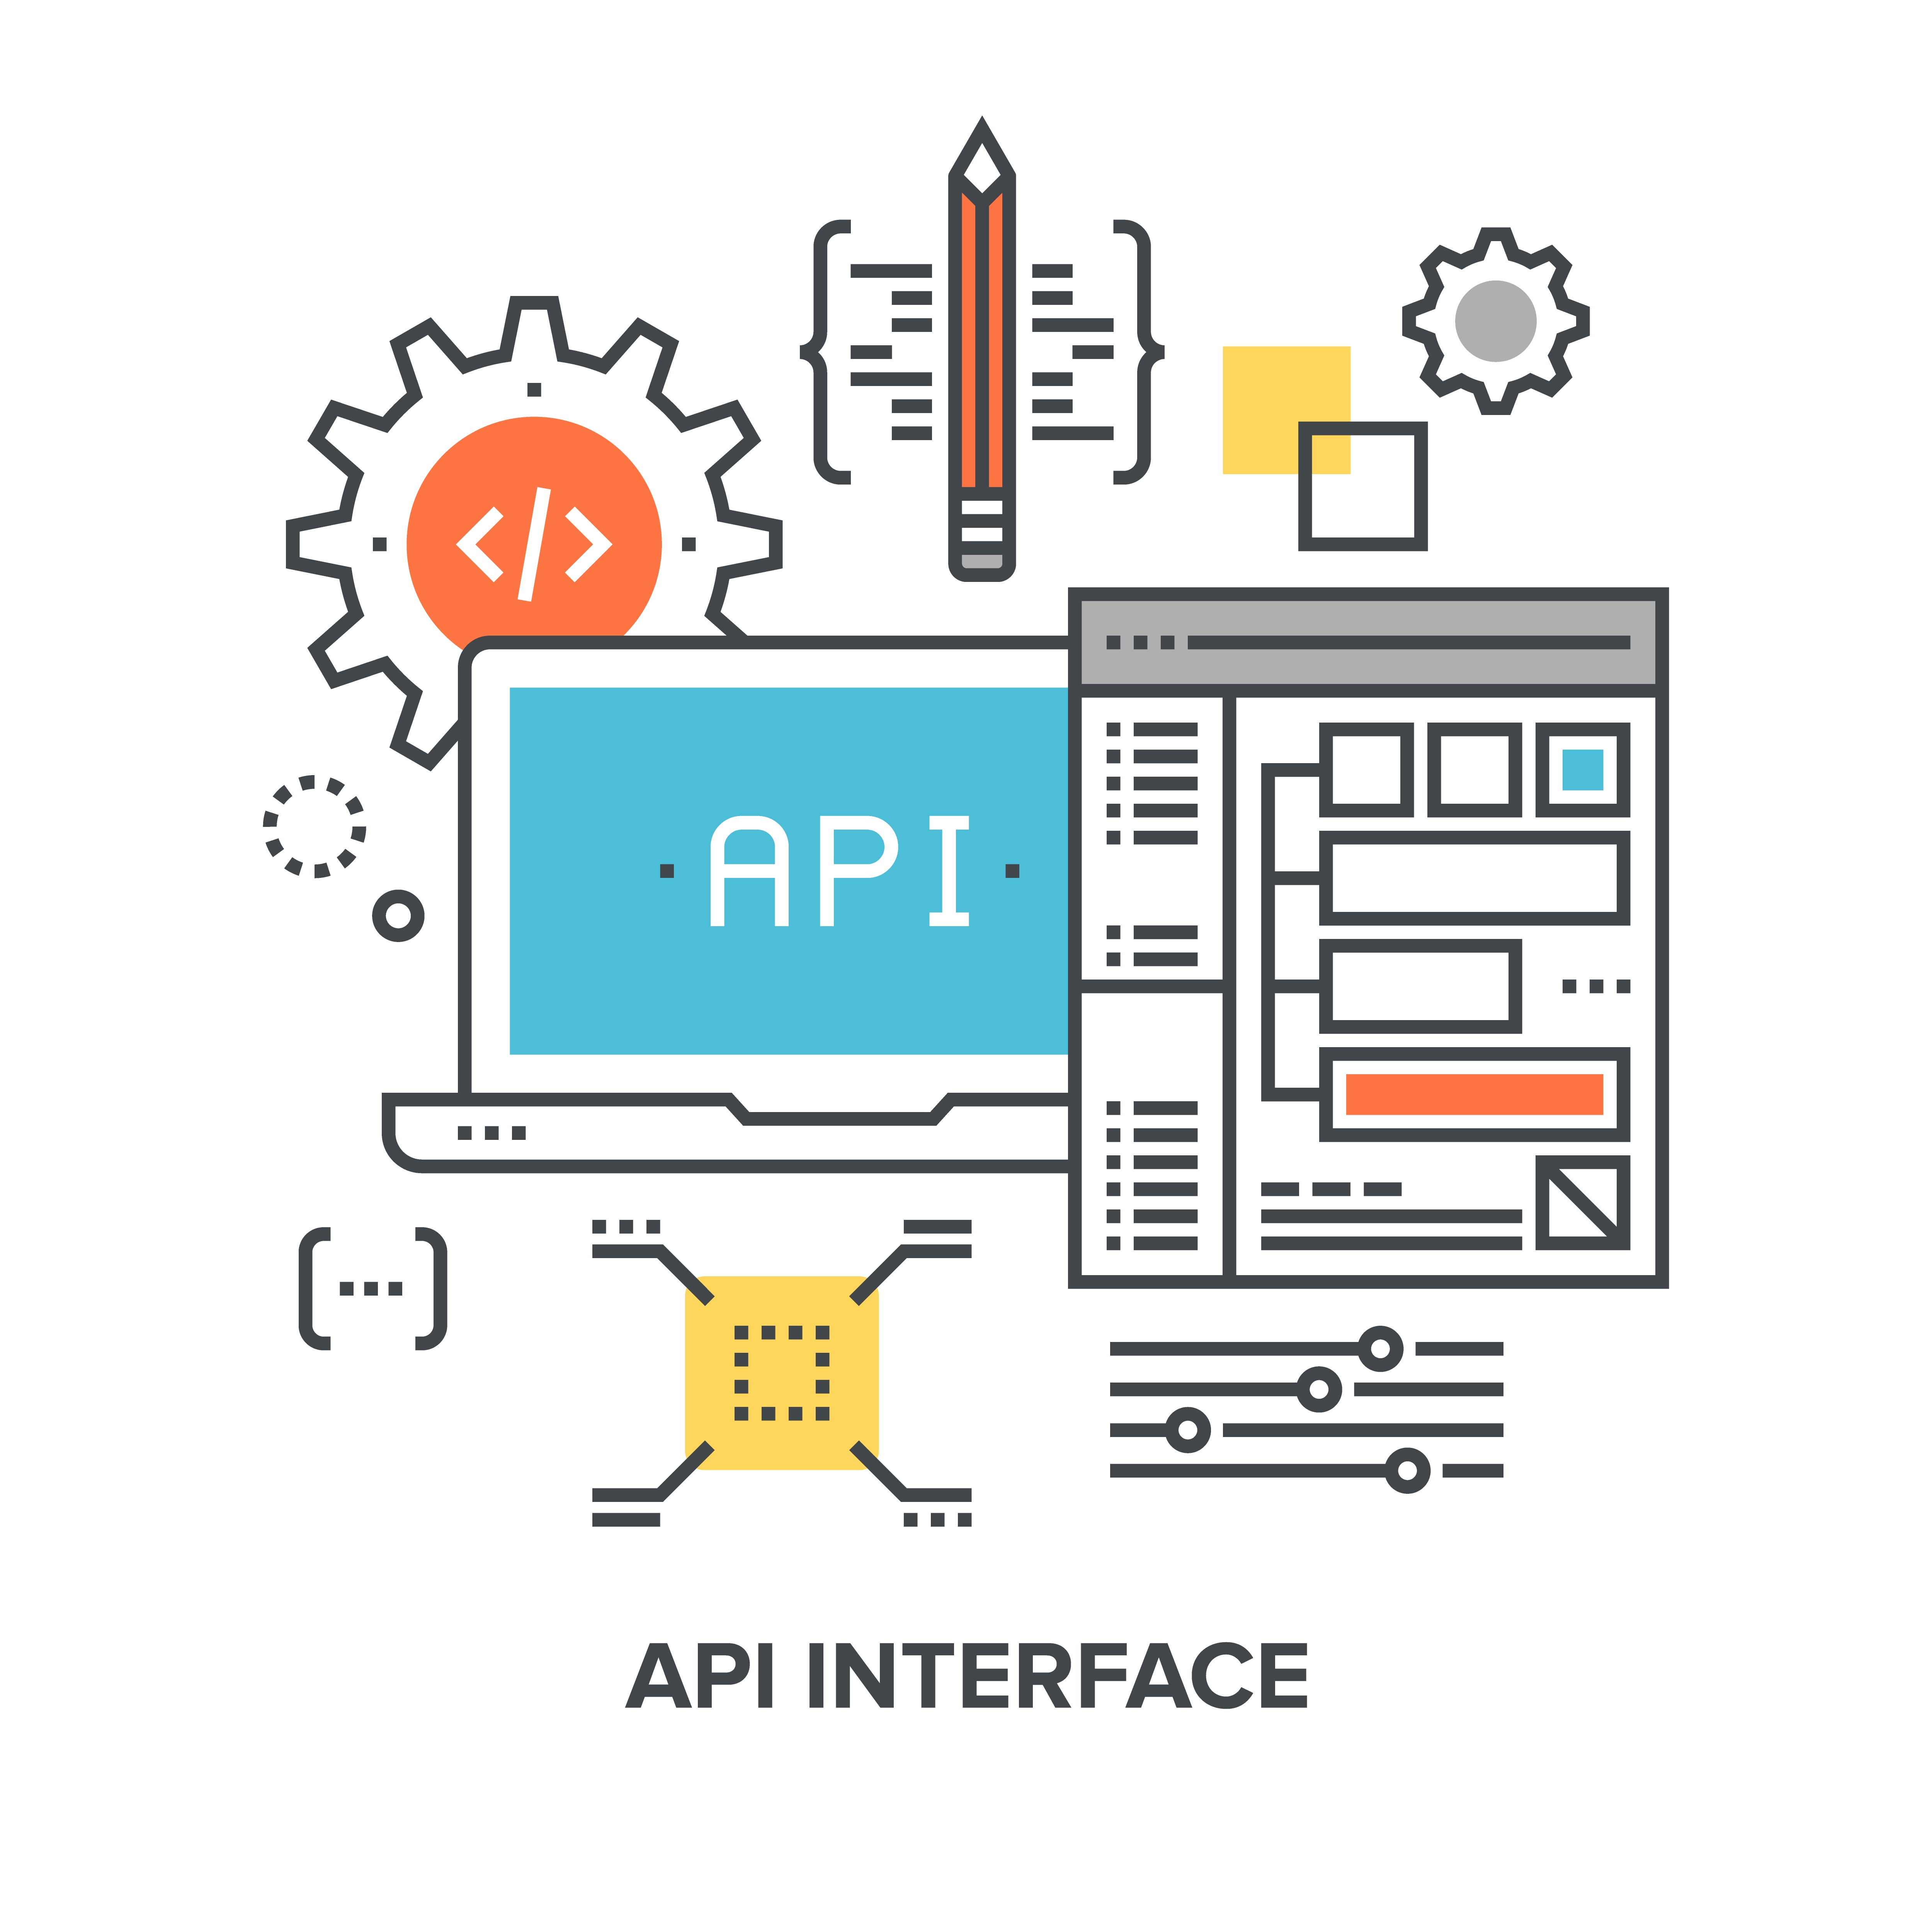 check the post:What Is an API and How Does It Help You? for a description of the image